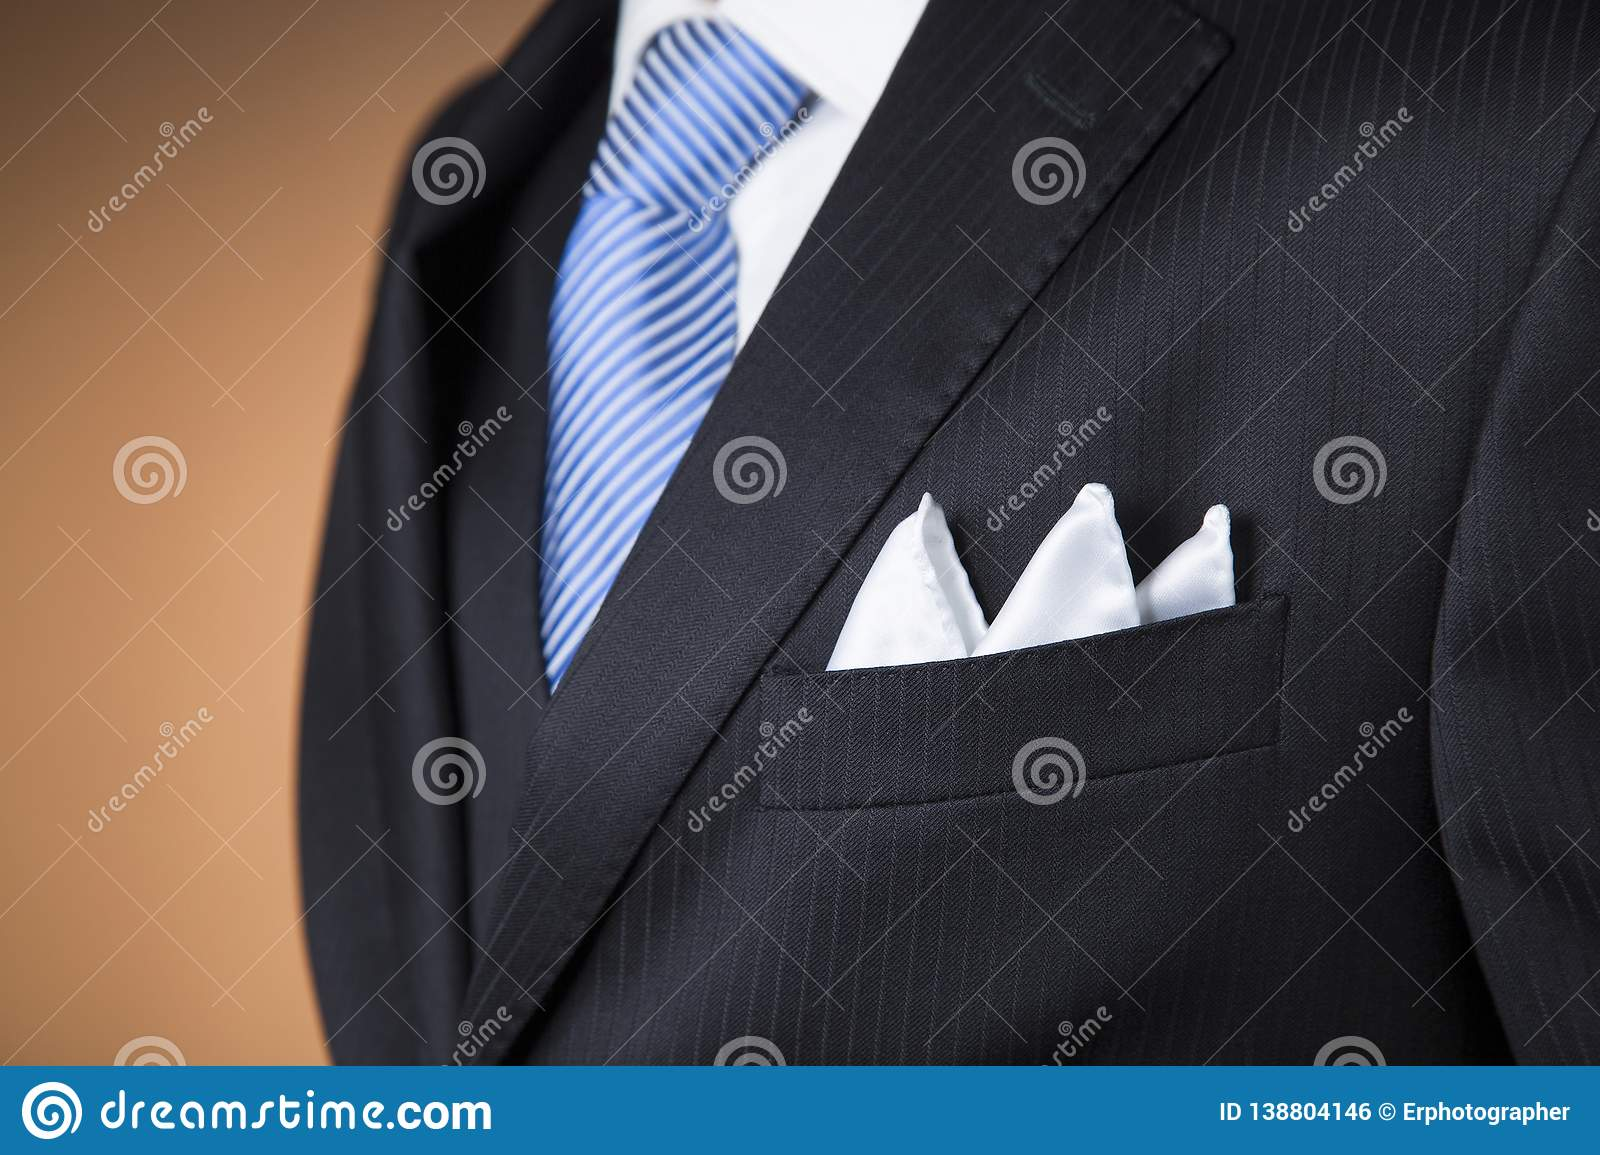 630c642e73b2f9 Close up of a white pocket handkerchief folded with three points in the  pocket of a black pinstripe suit with a blue tie and orange background